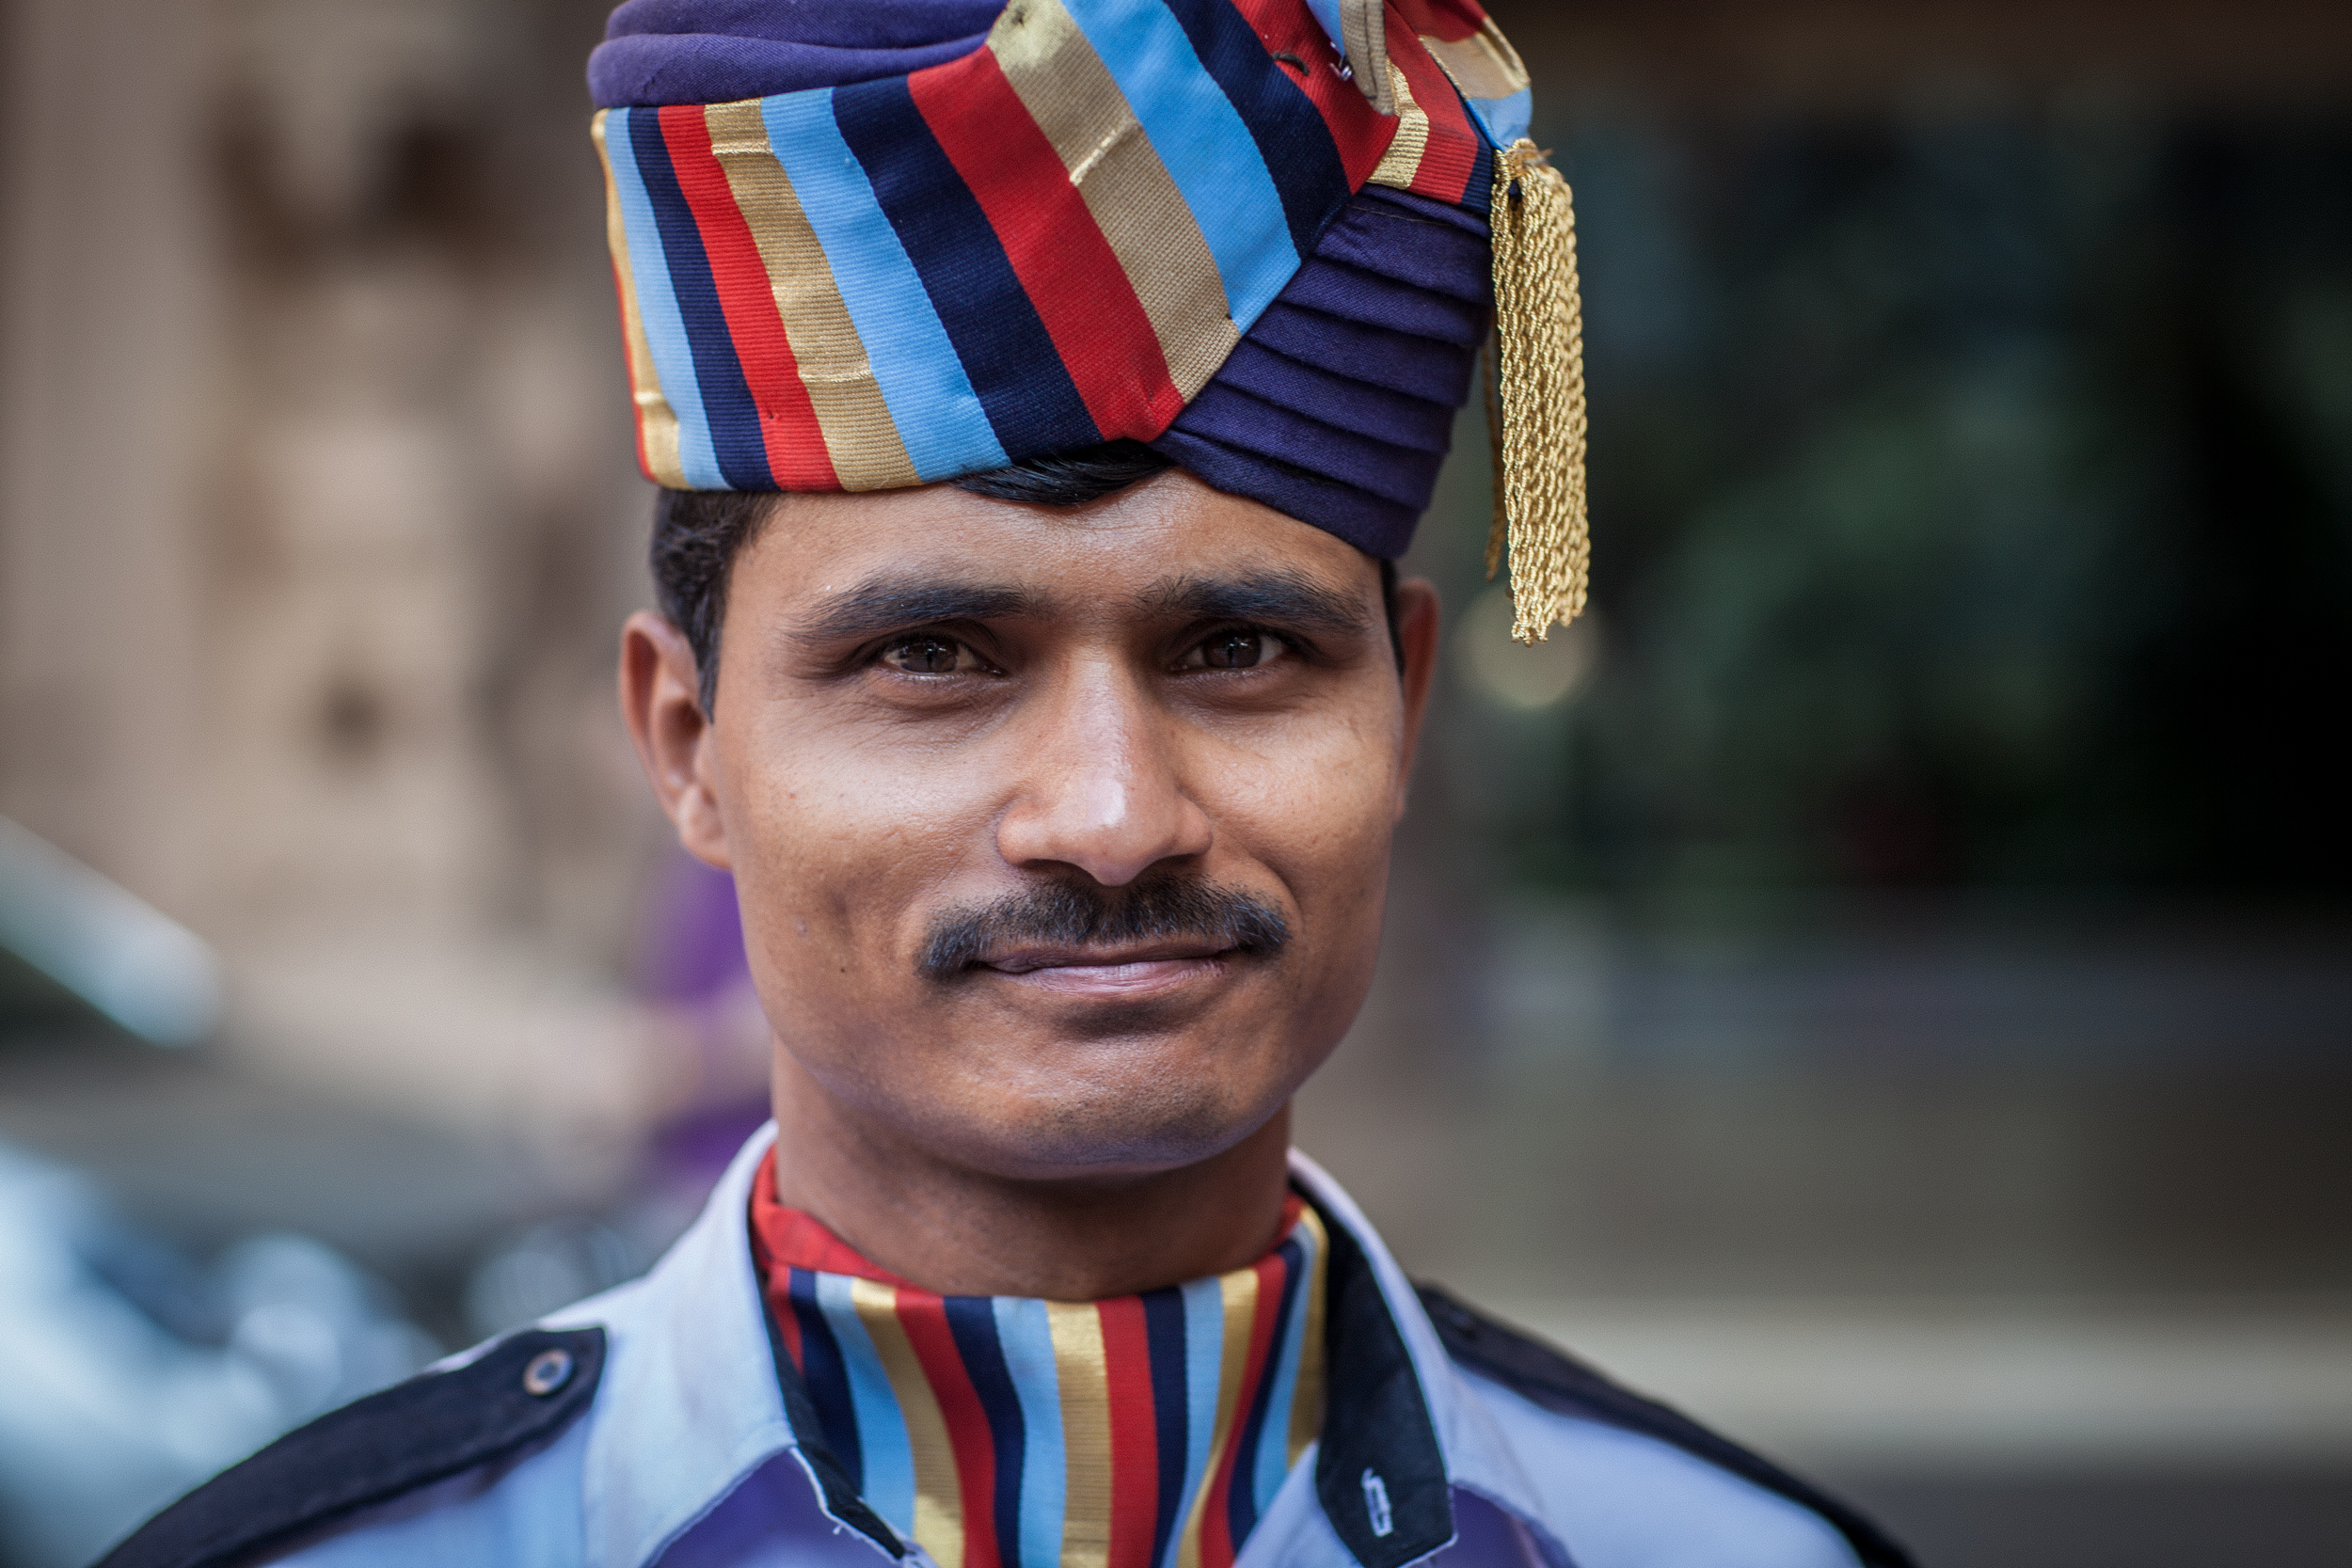 Security Guard, Bengaluru, India